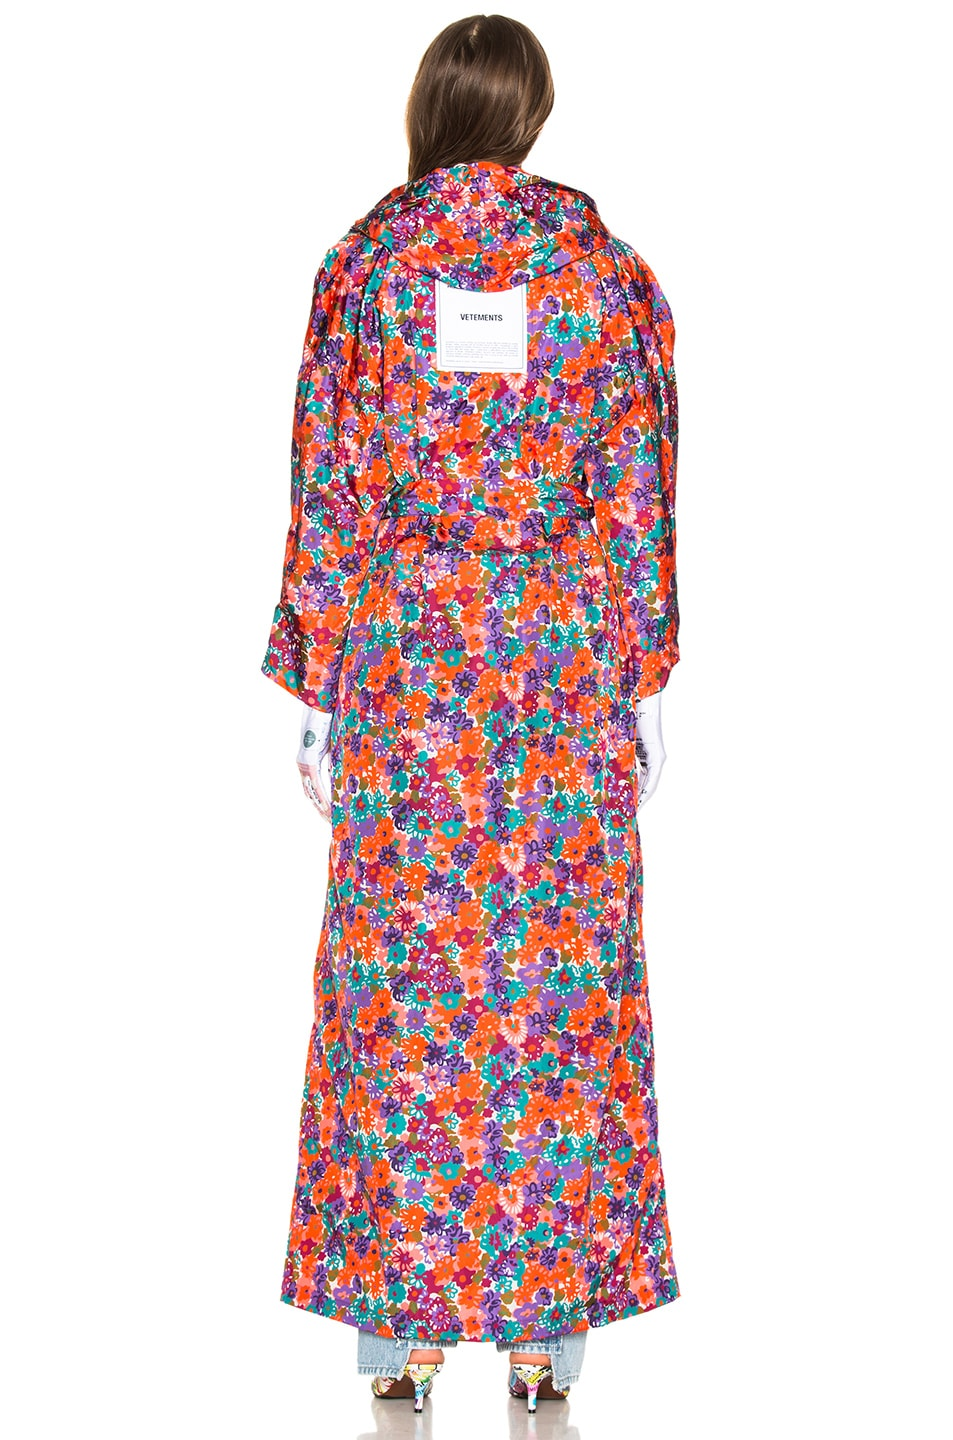 Image 4 of VETEMENTS Kimono Raincoat in Orange & Flowers